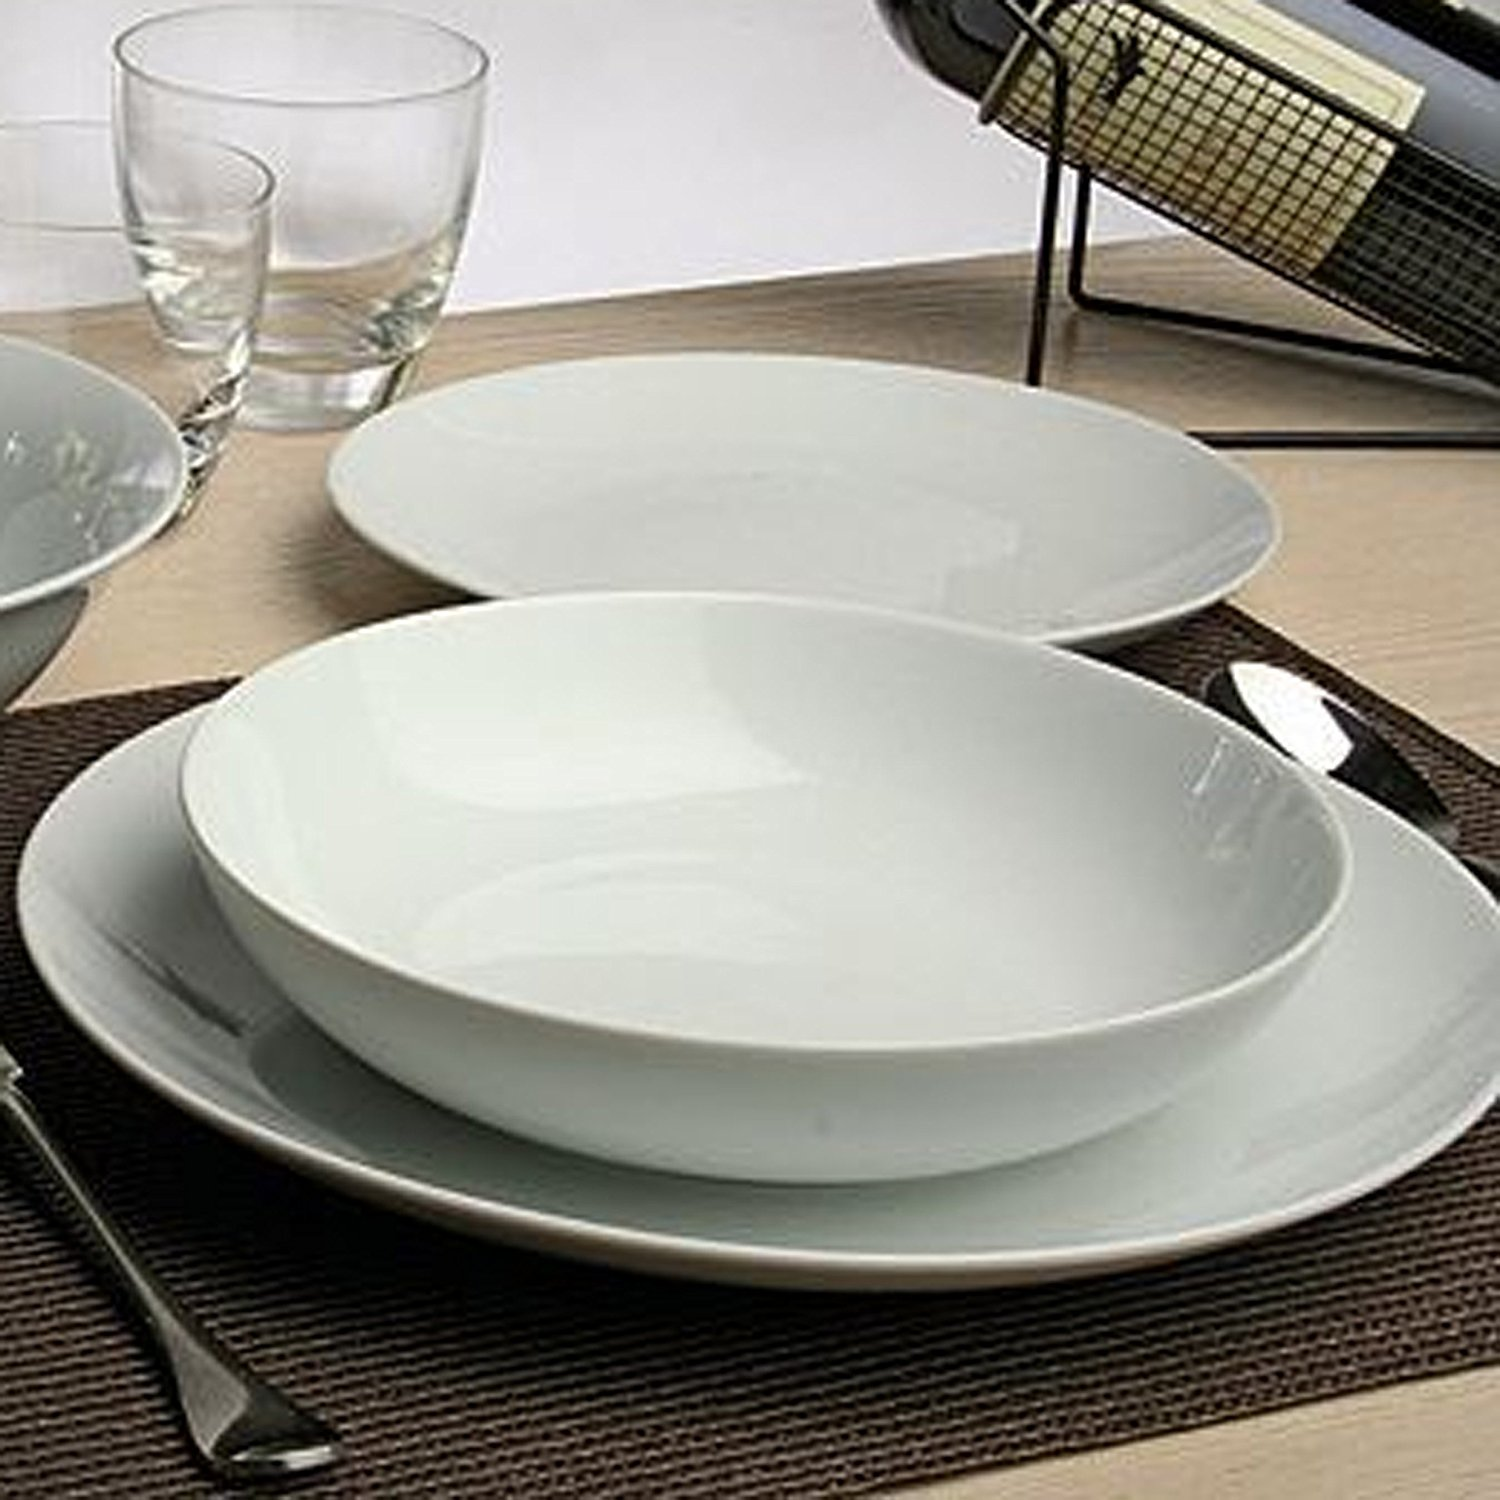 sports shoes 2e861 4cd53 Full set 18 Pieces, Dishes set for 6 people, Tognana Metropolis White in  porcelain, Newformsdesign | Plates and dinner services | Newformsdesign